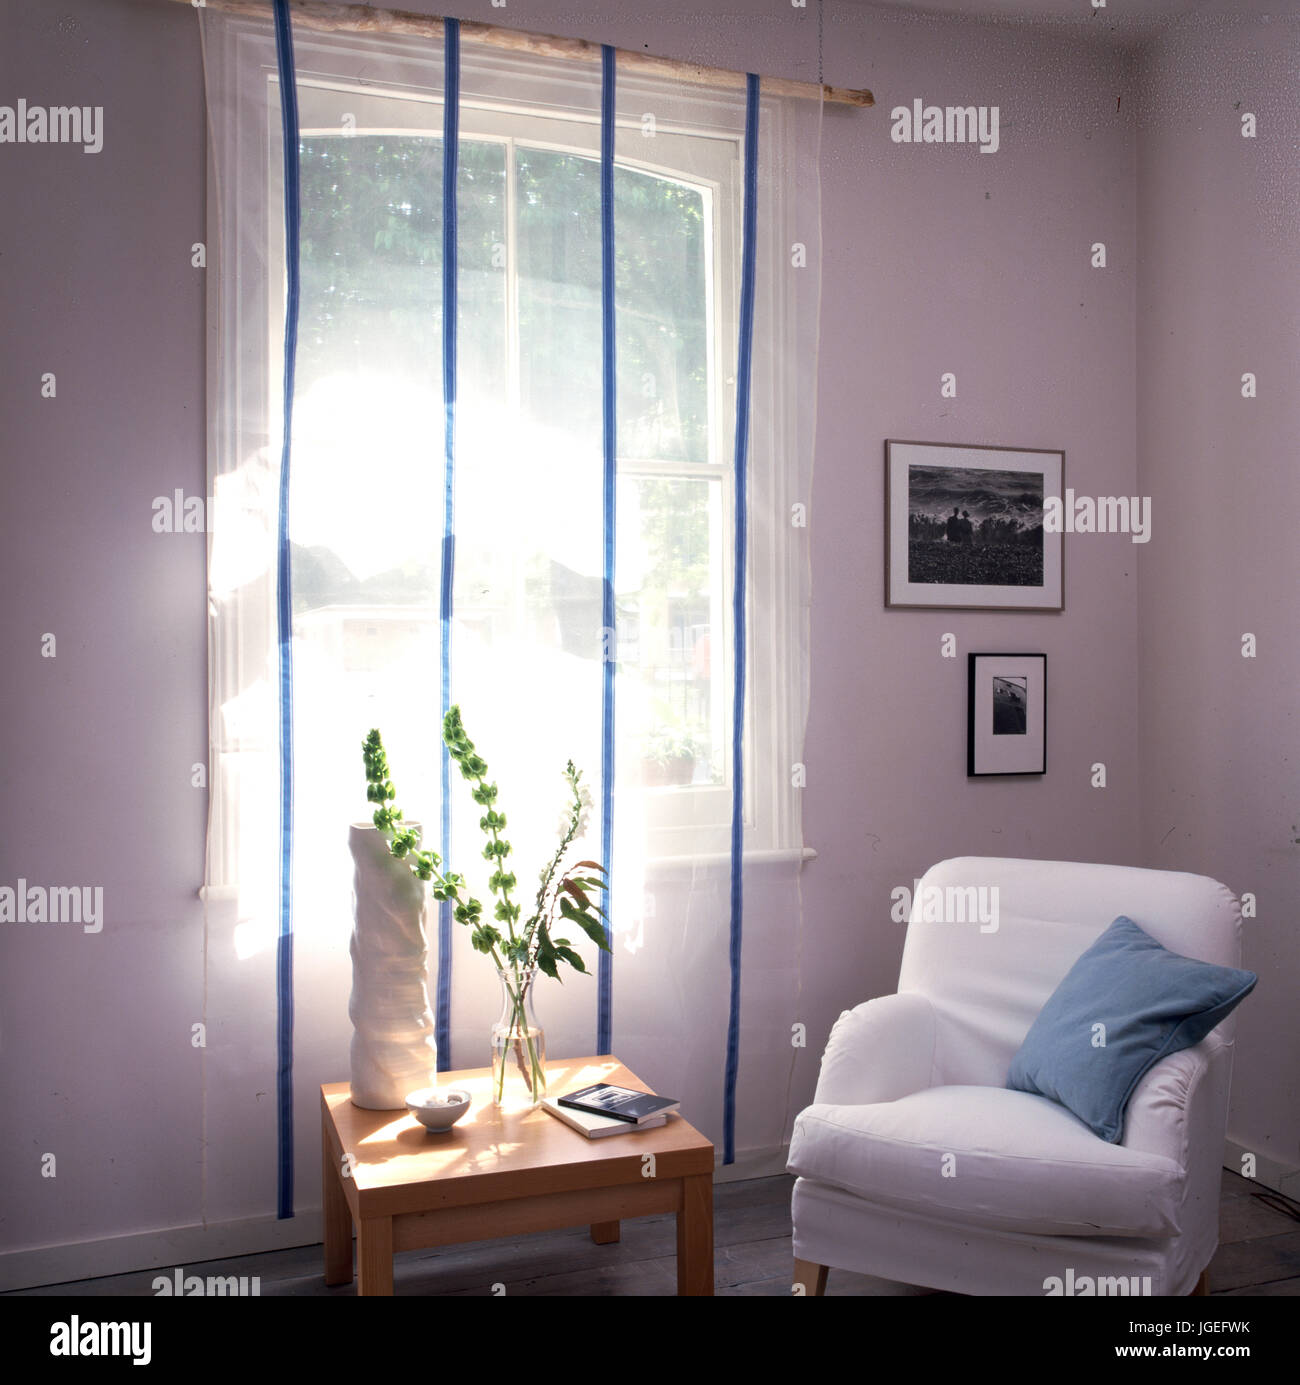 Sheer fabric covering window with blue vertical ribbons - Stock Image